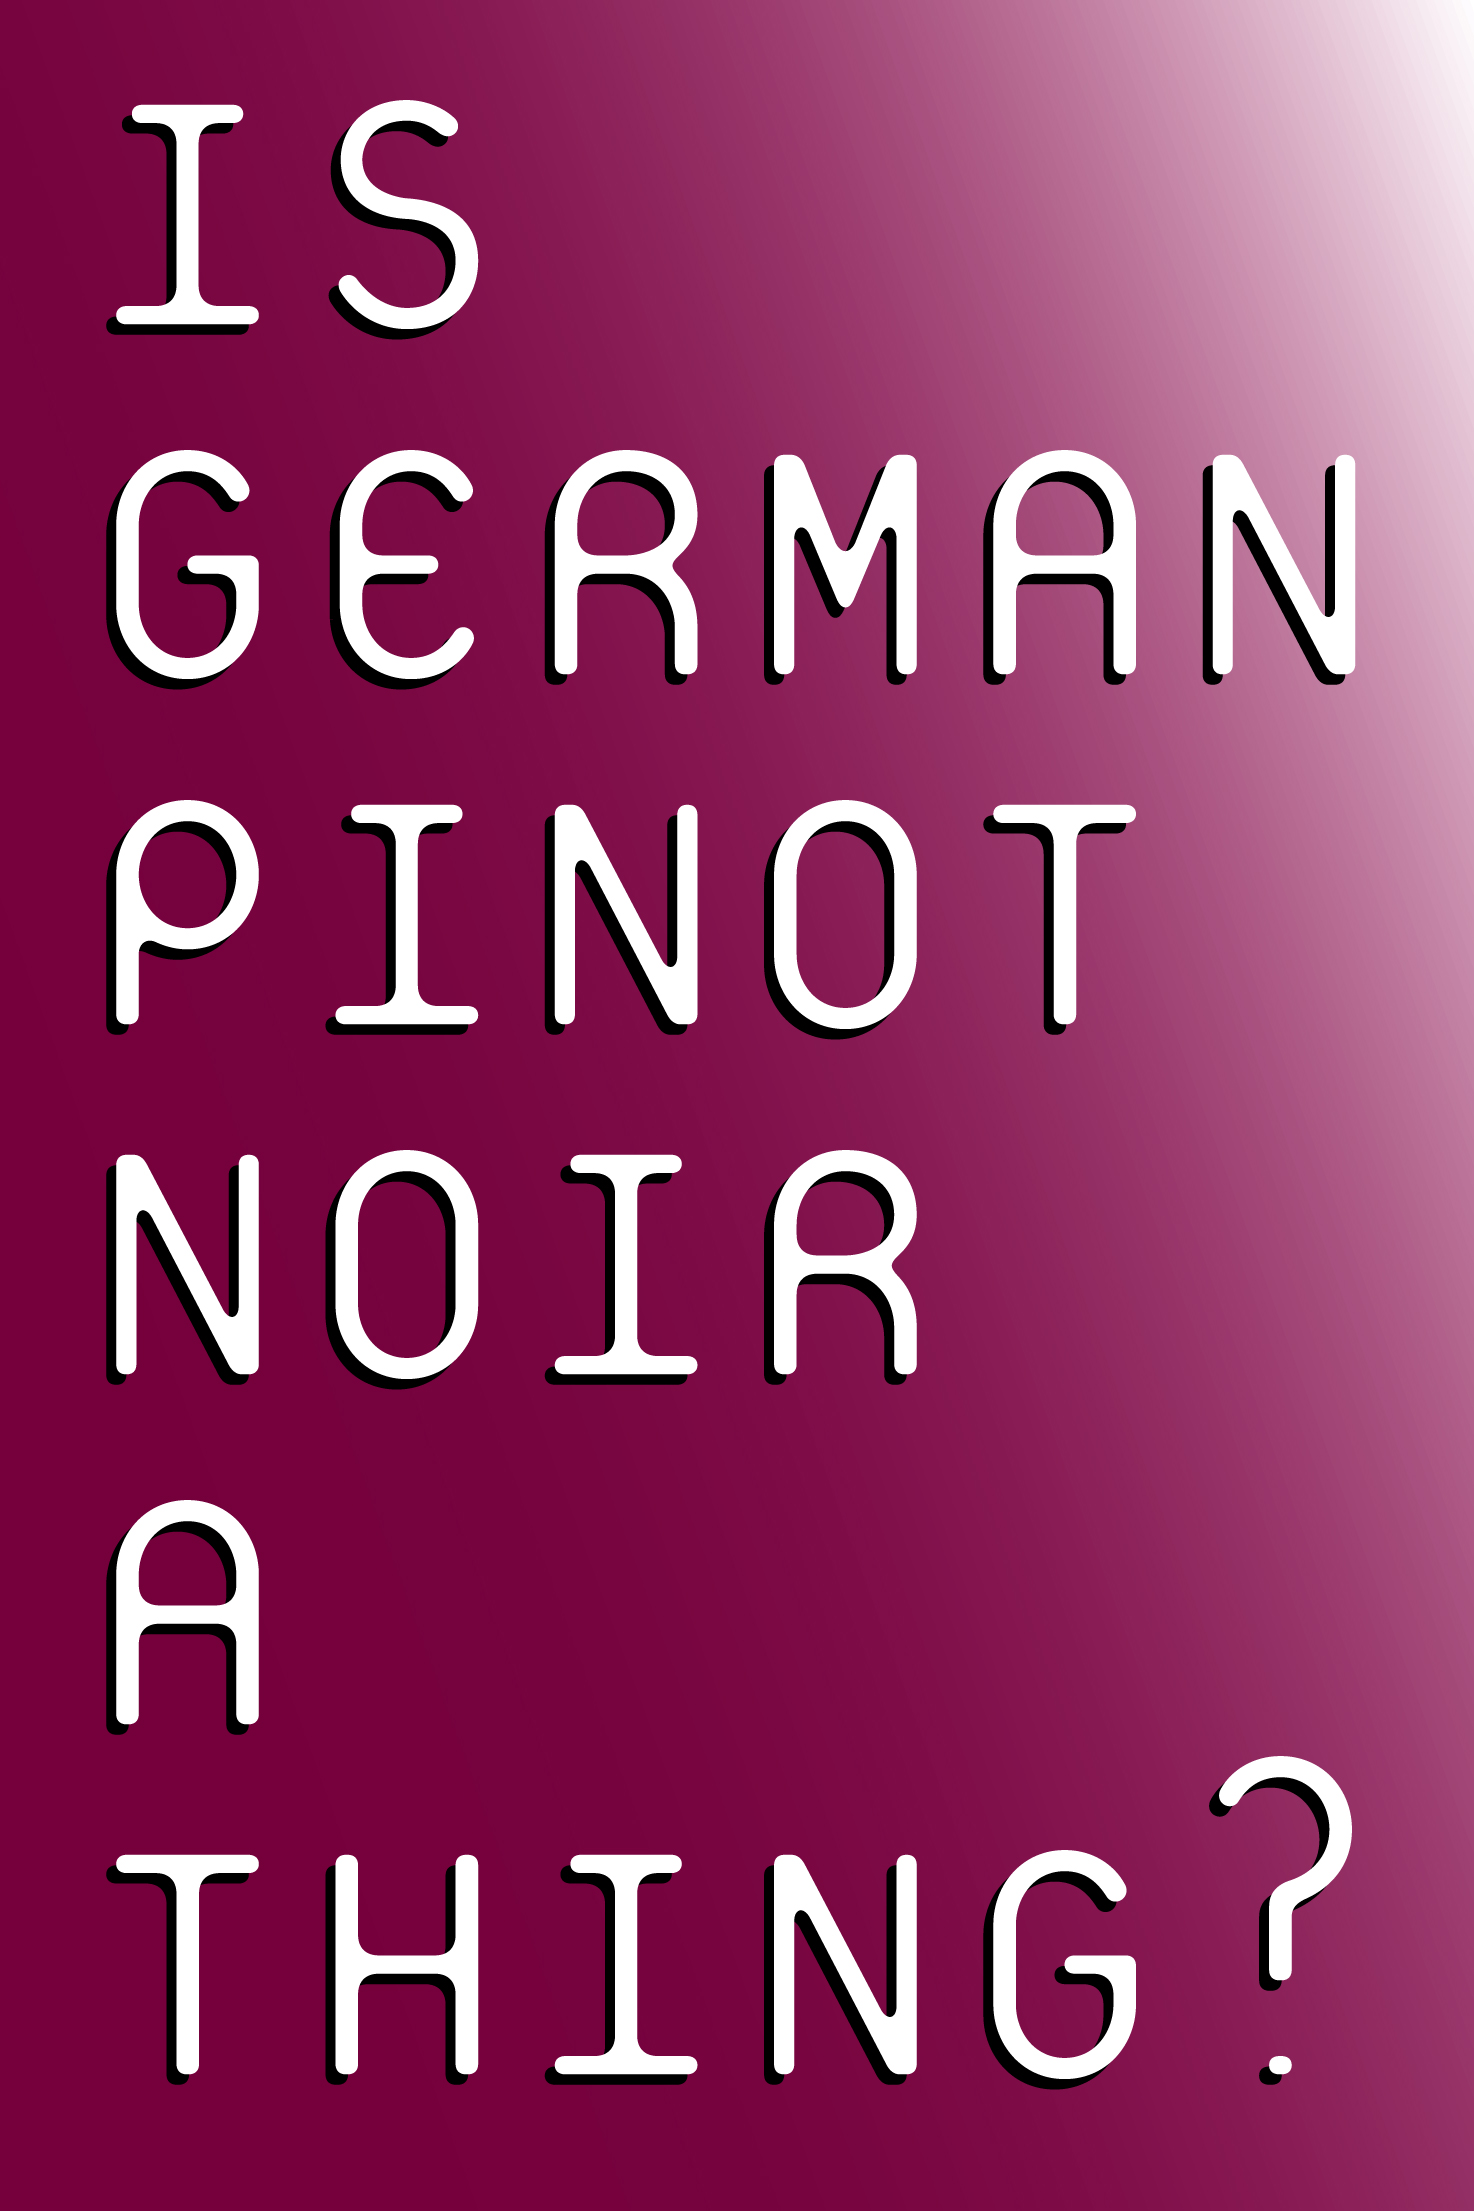 Austrian and German Pinot Noir Tasting